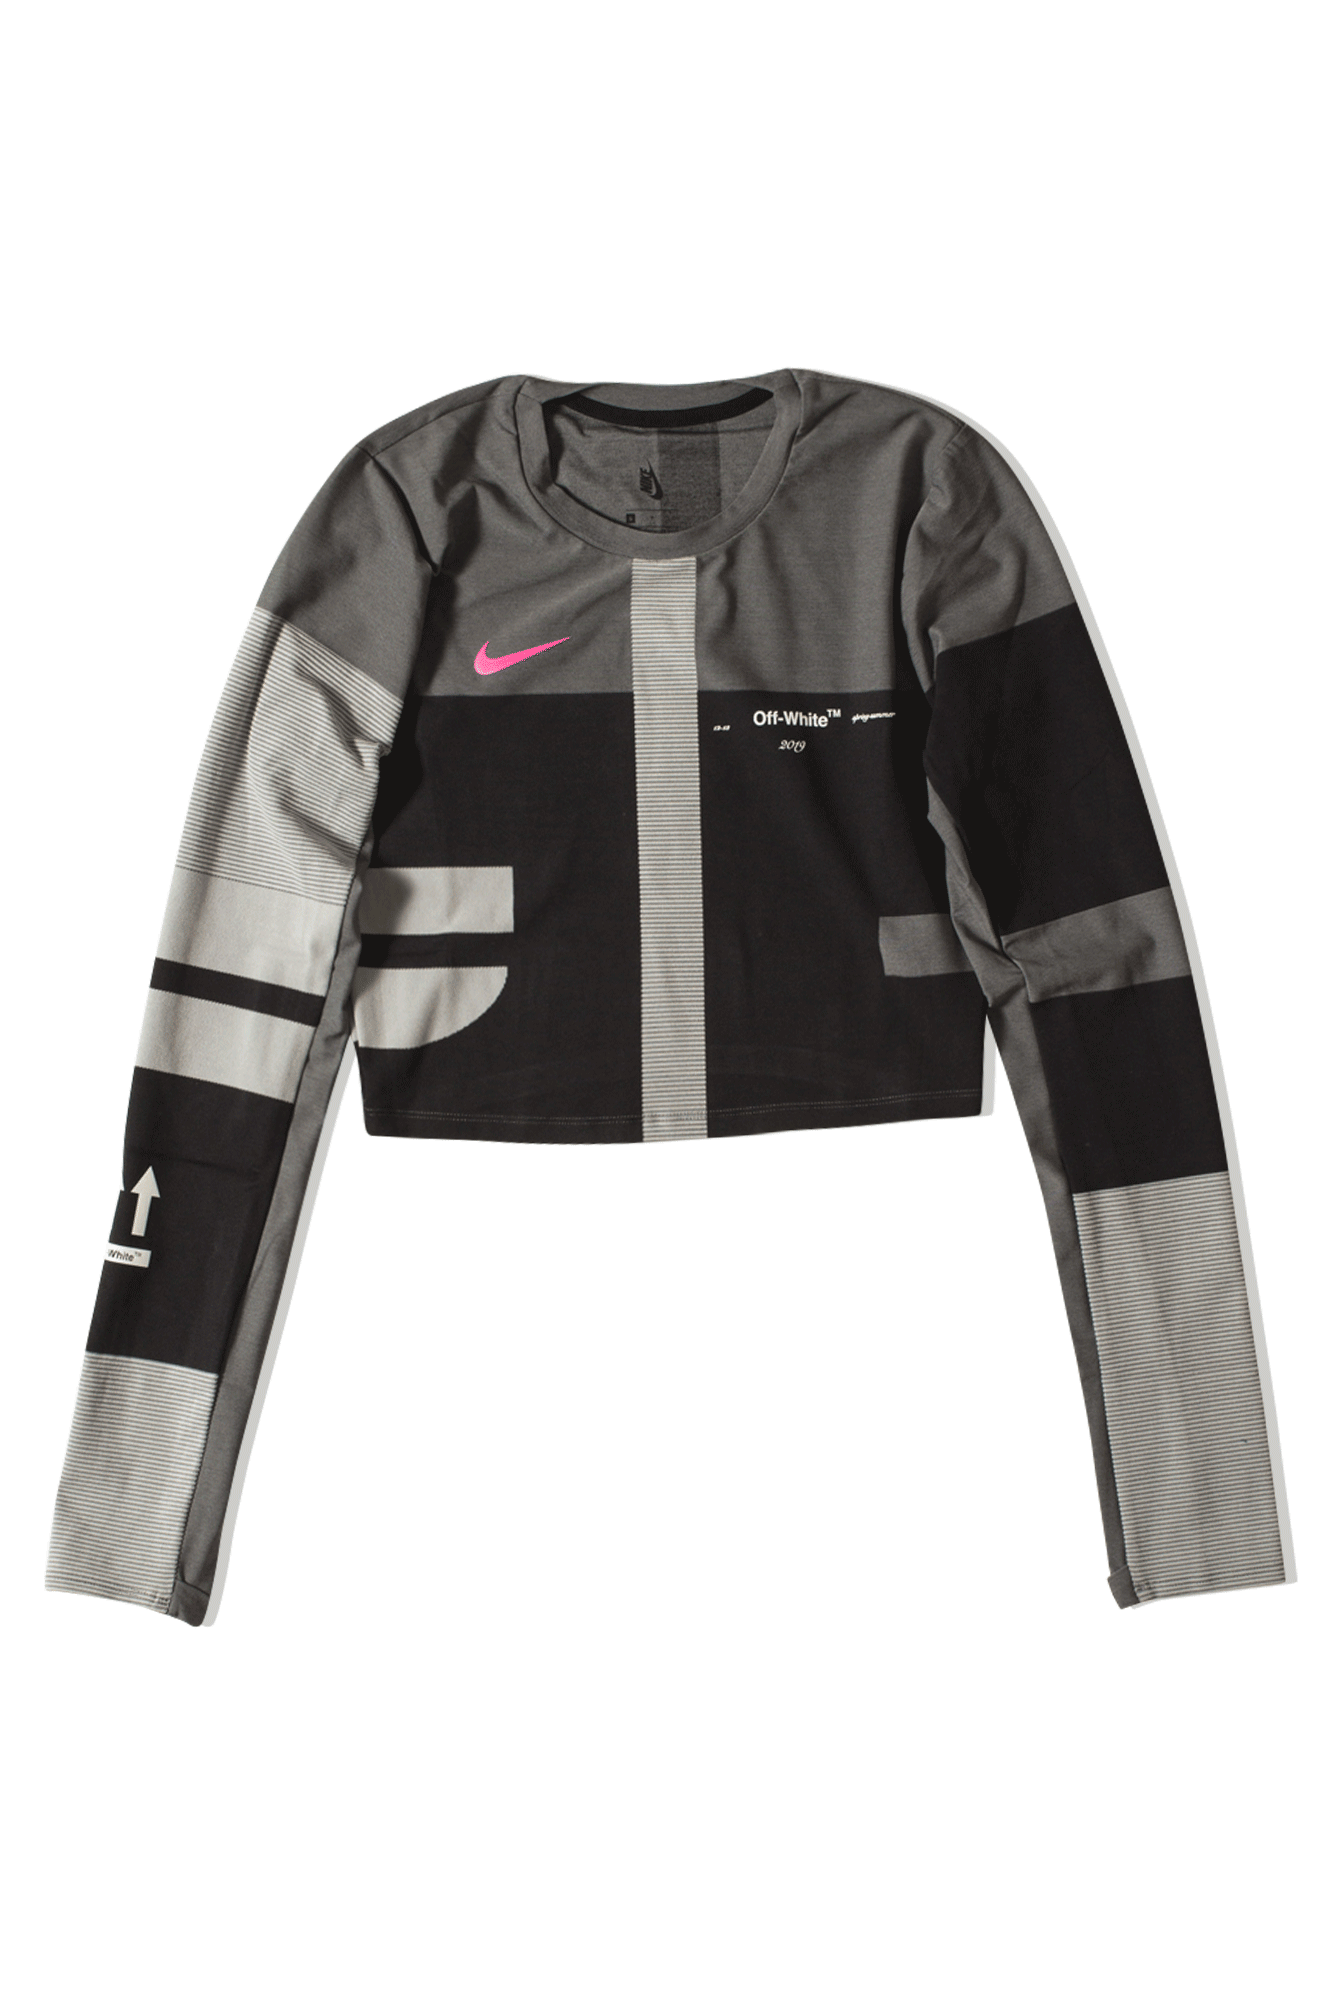 Nike Sweaters W Easy Run Top X Off-White Black BV8042#000#010#XXS - One Block Down